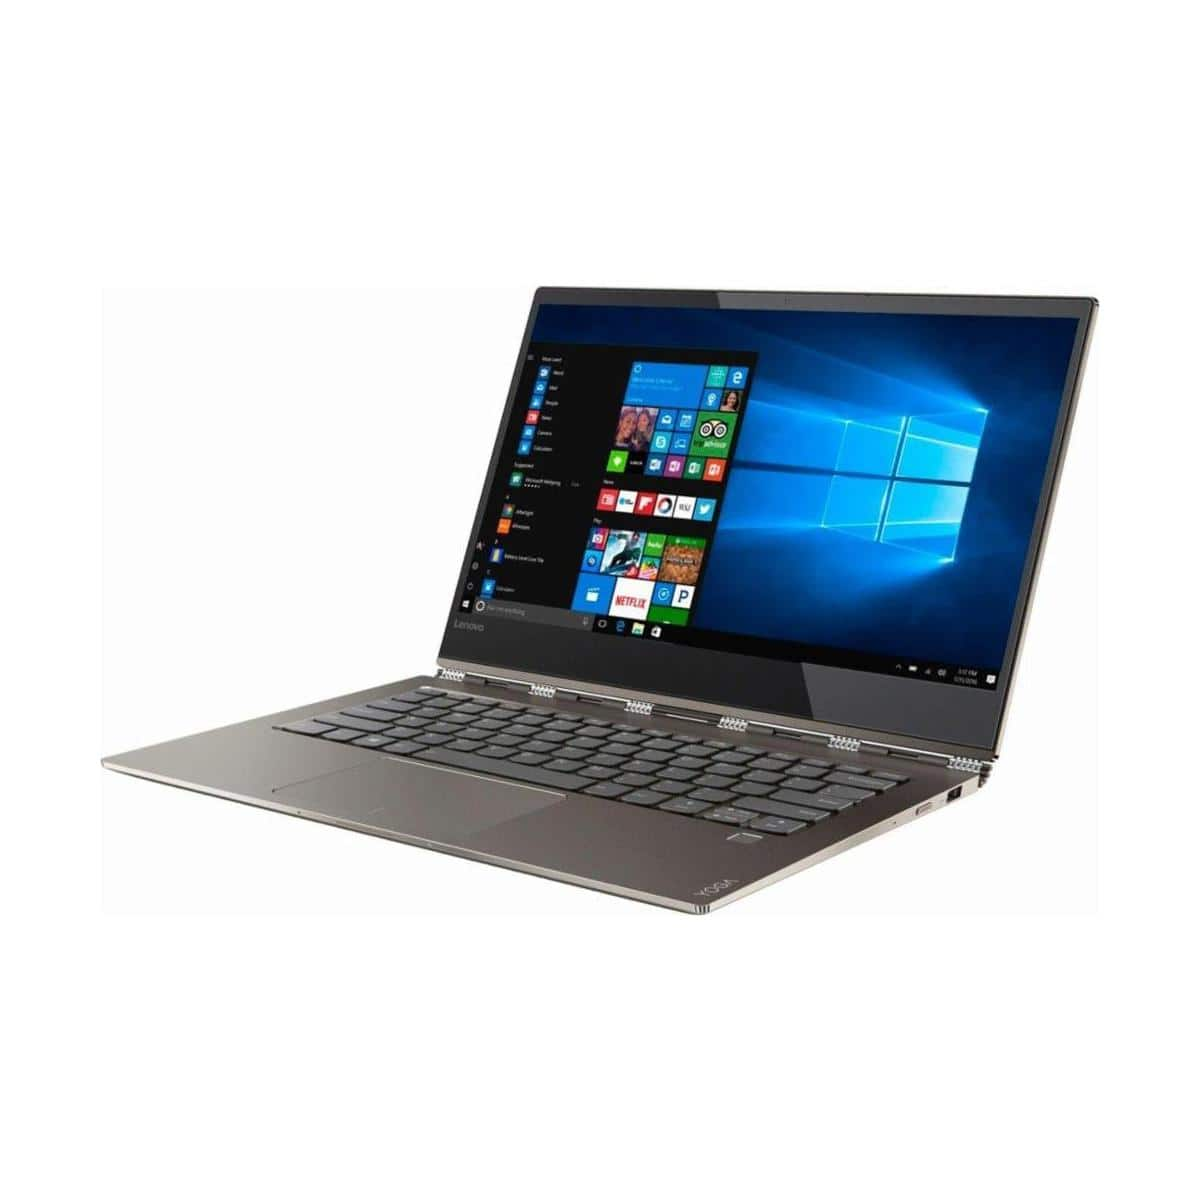 Lenovo Yoga 920 2-in-1: 13.9'' FHD IPS Touch, i7-8550U, 8GB DDR4, 256GB PCIe SSD, Thunderbolt 3, Active Stylus 2, Win10H @ $800 + F/S